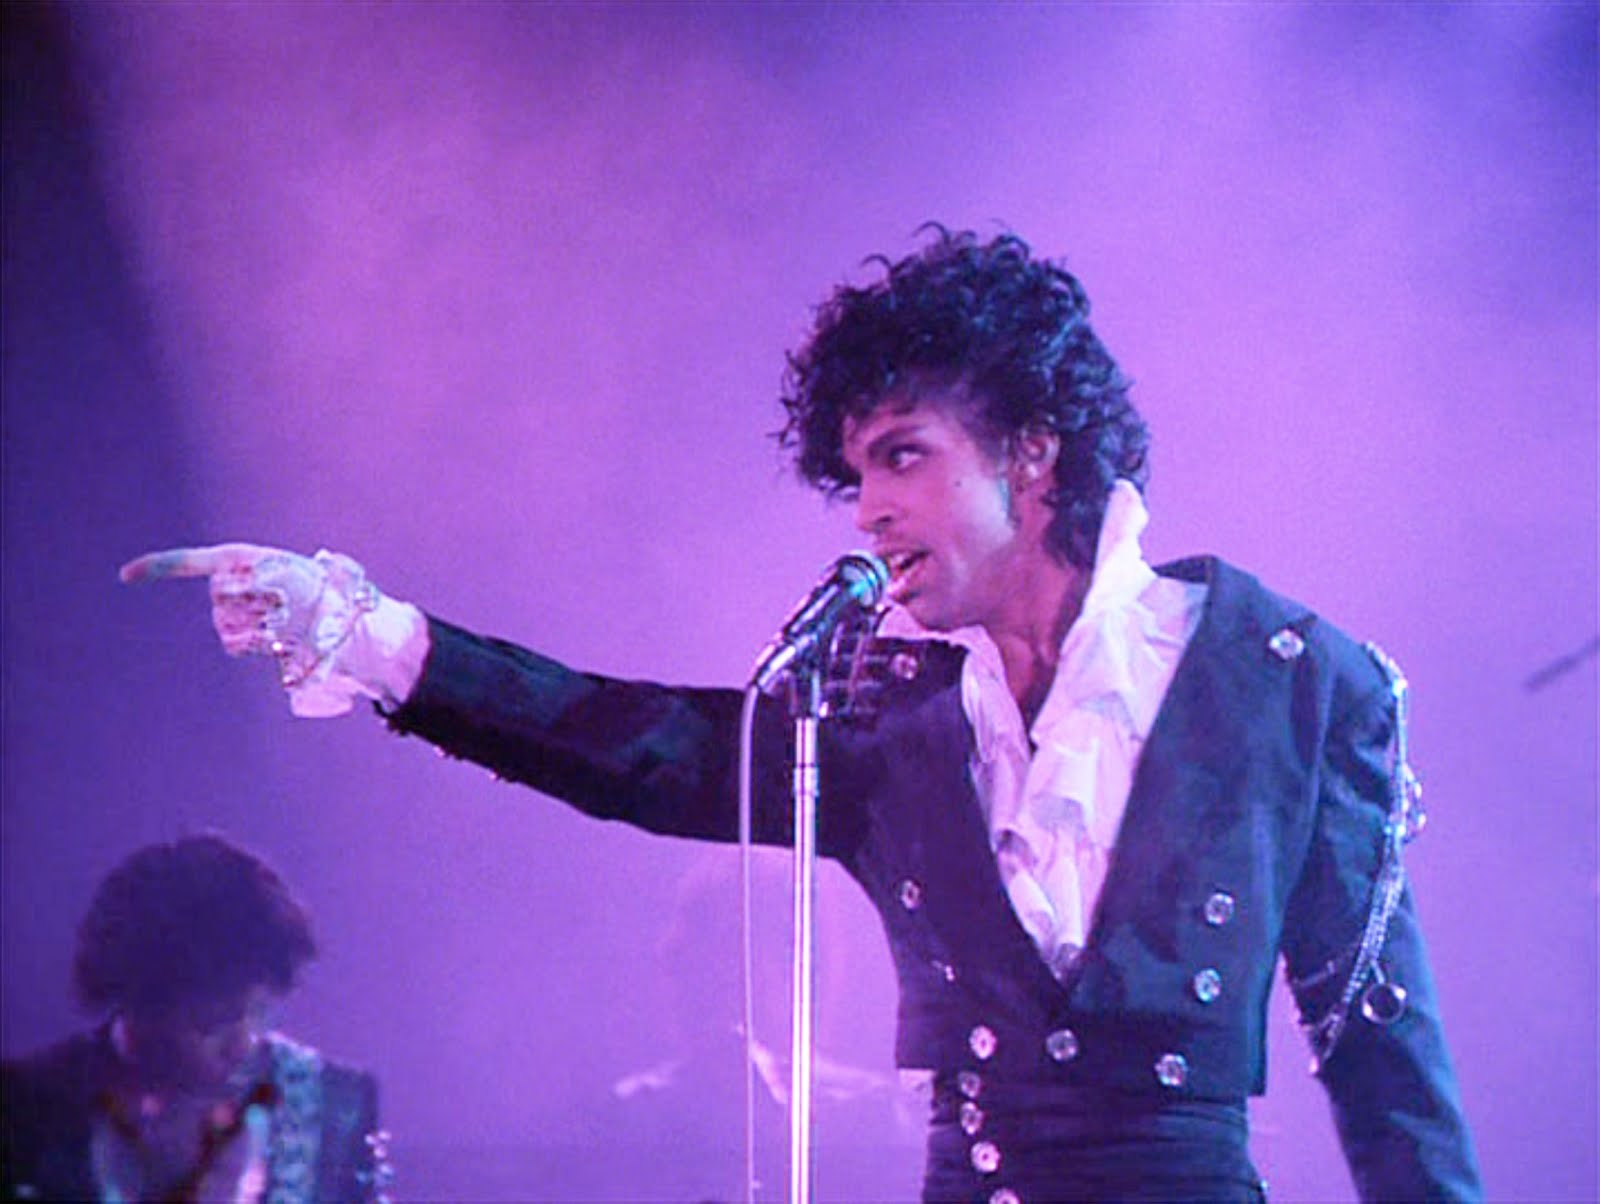 Performing The Beautiful Ones in Purple Rain (the movie), 1984